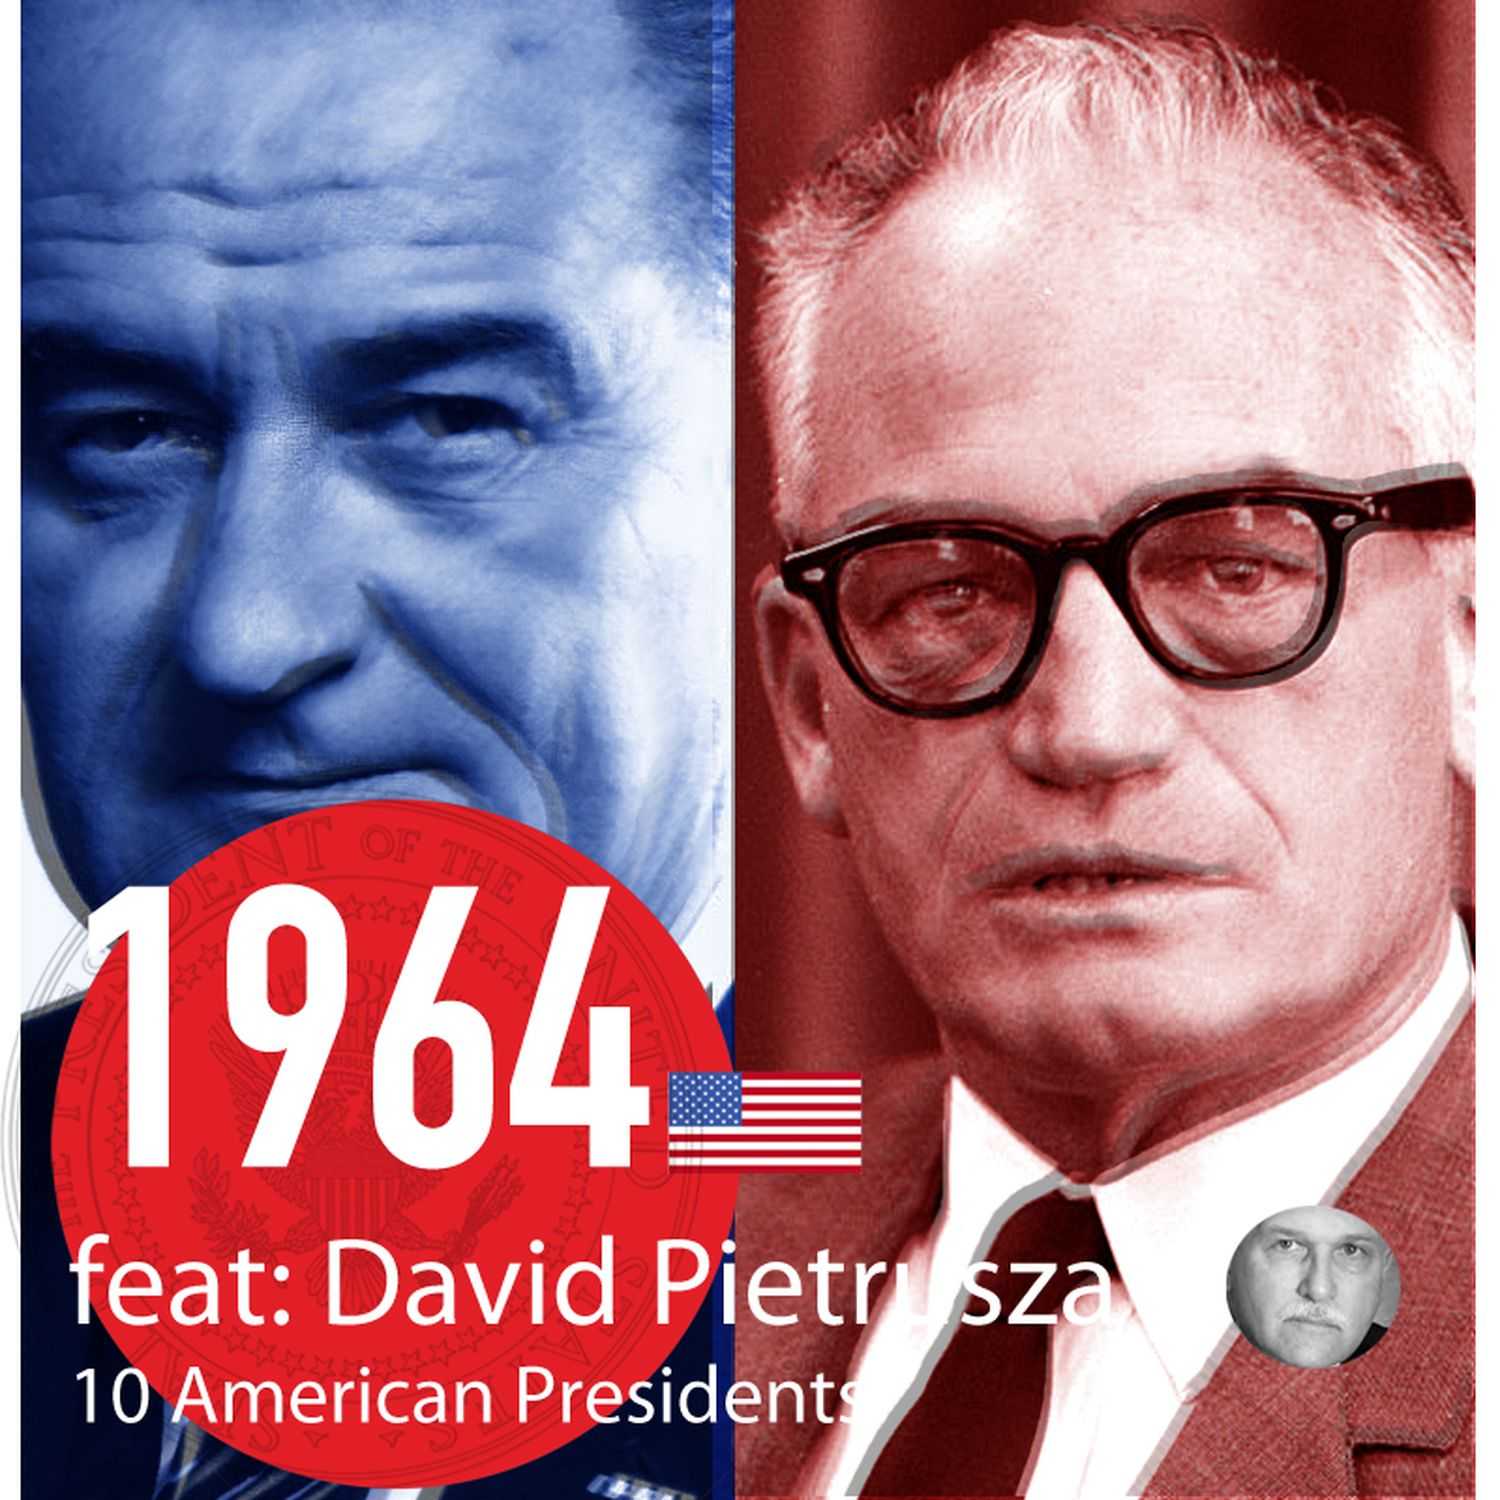 EP:7 - United States presidential election, 1964